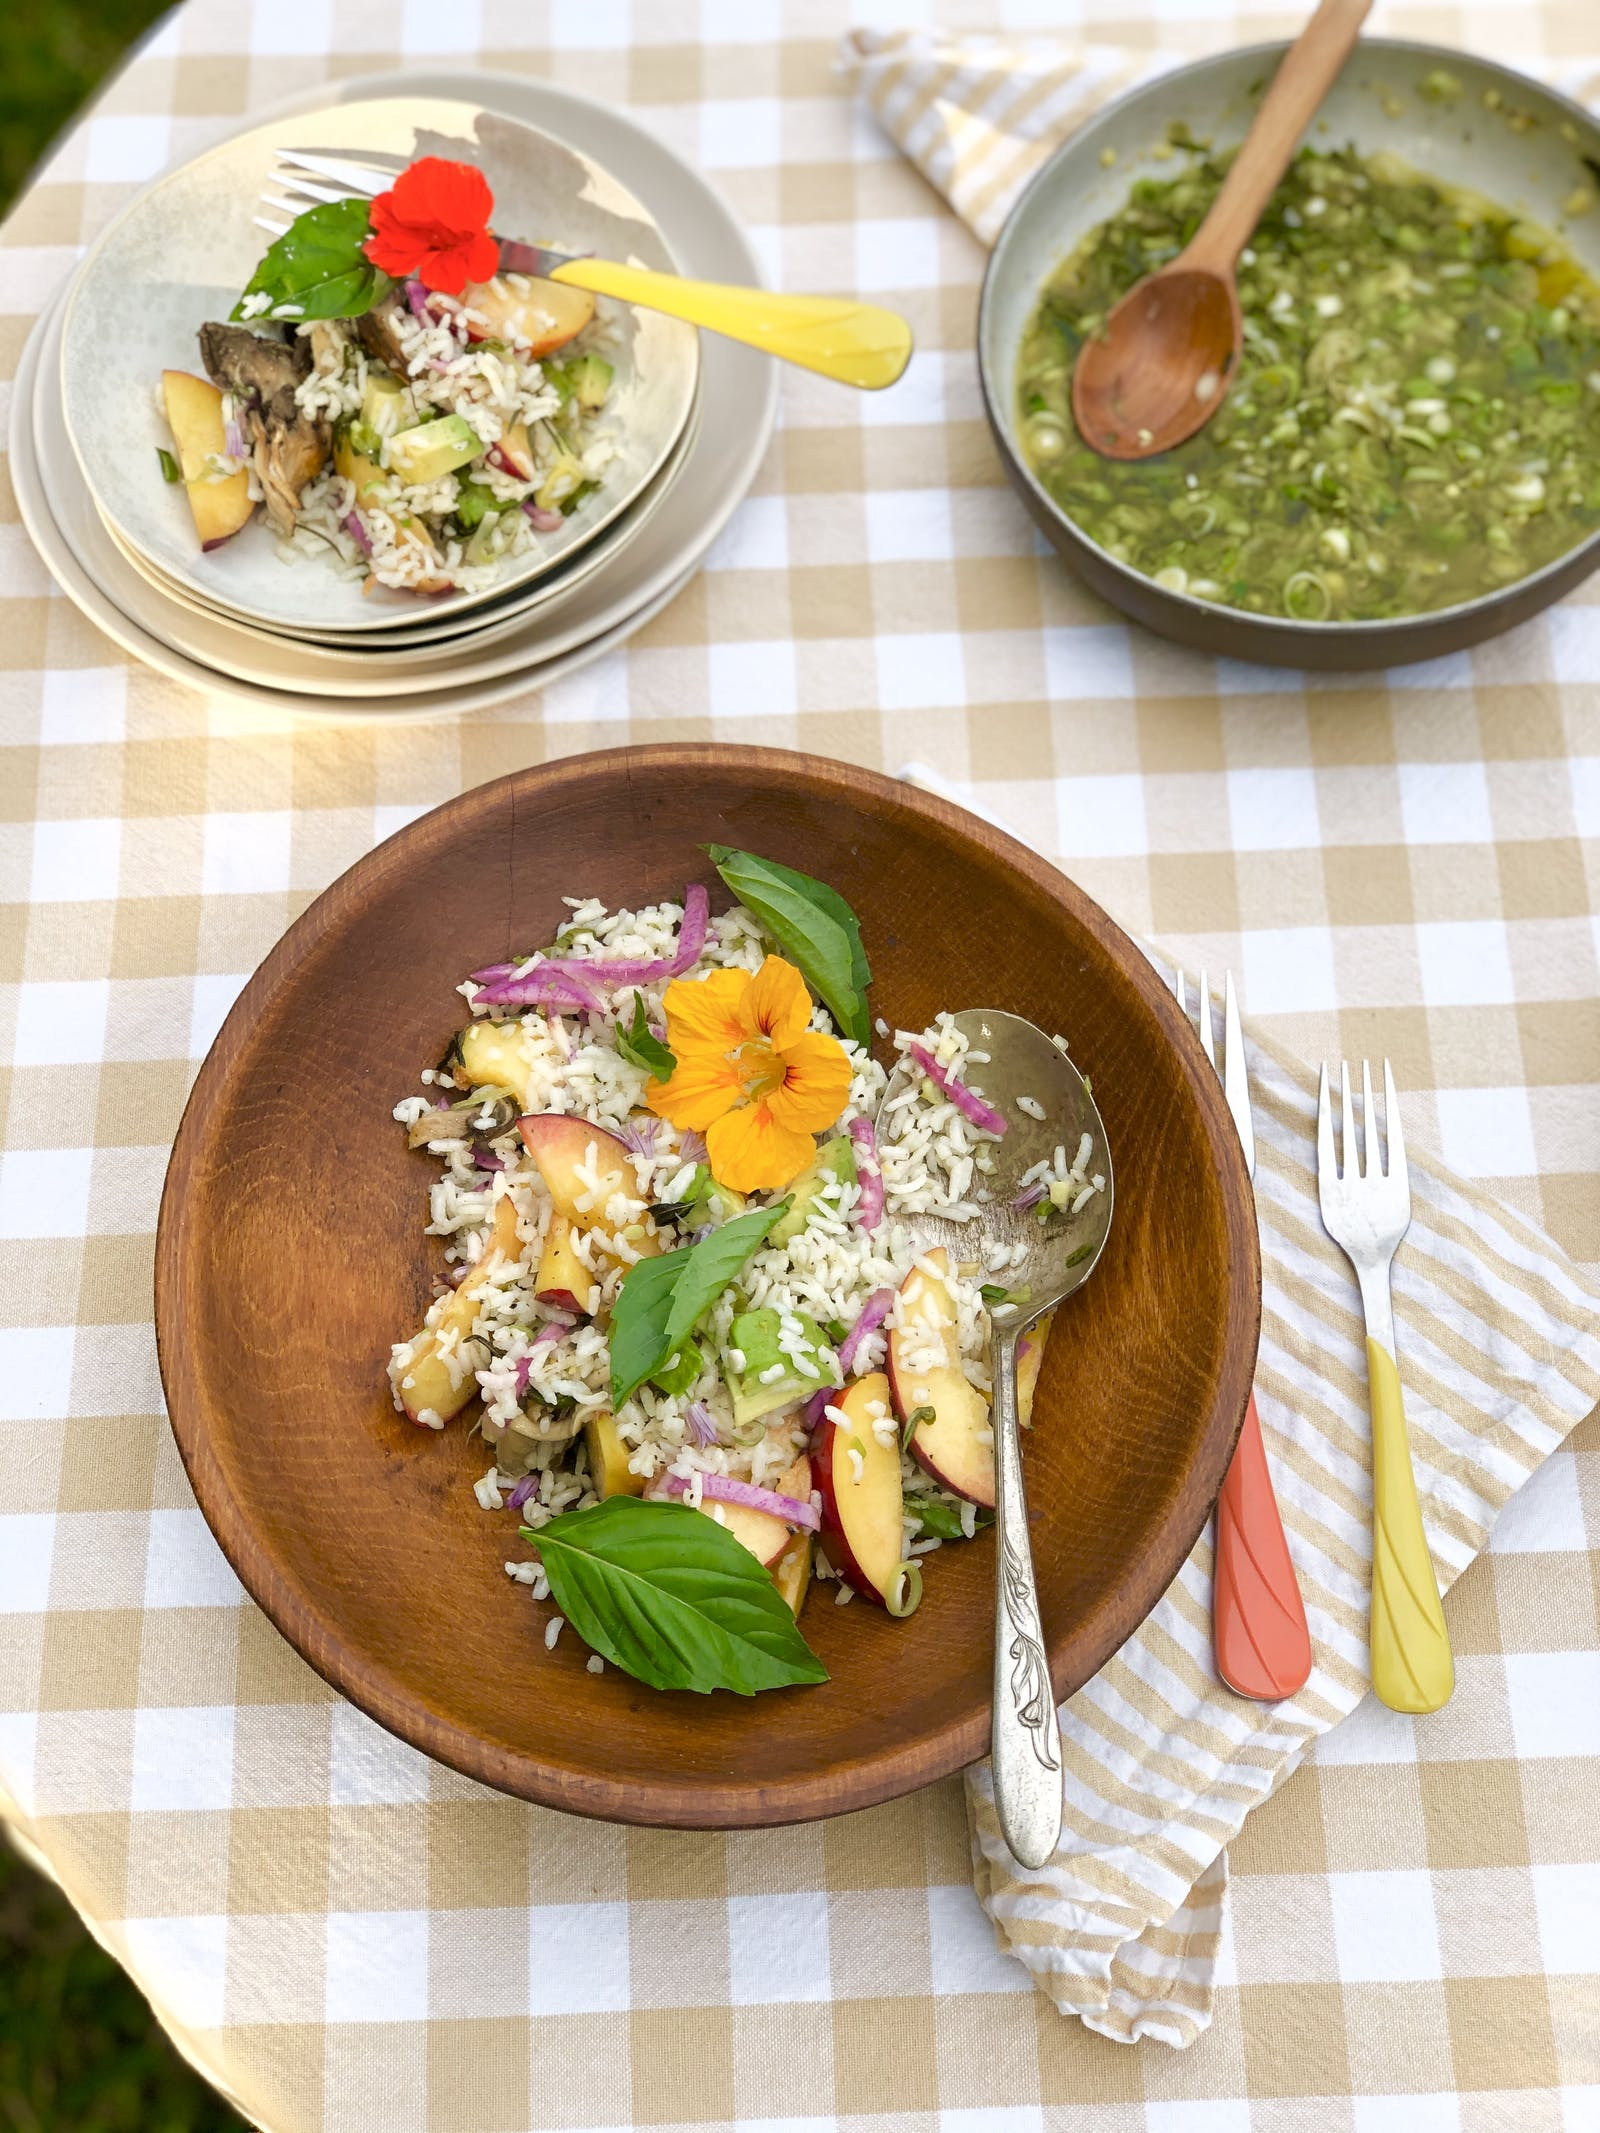 Woldy Kusina x Natoora Meal Kit for the Ali Forney Center